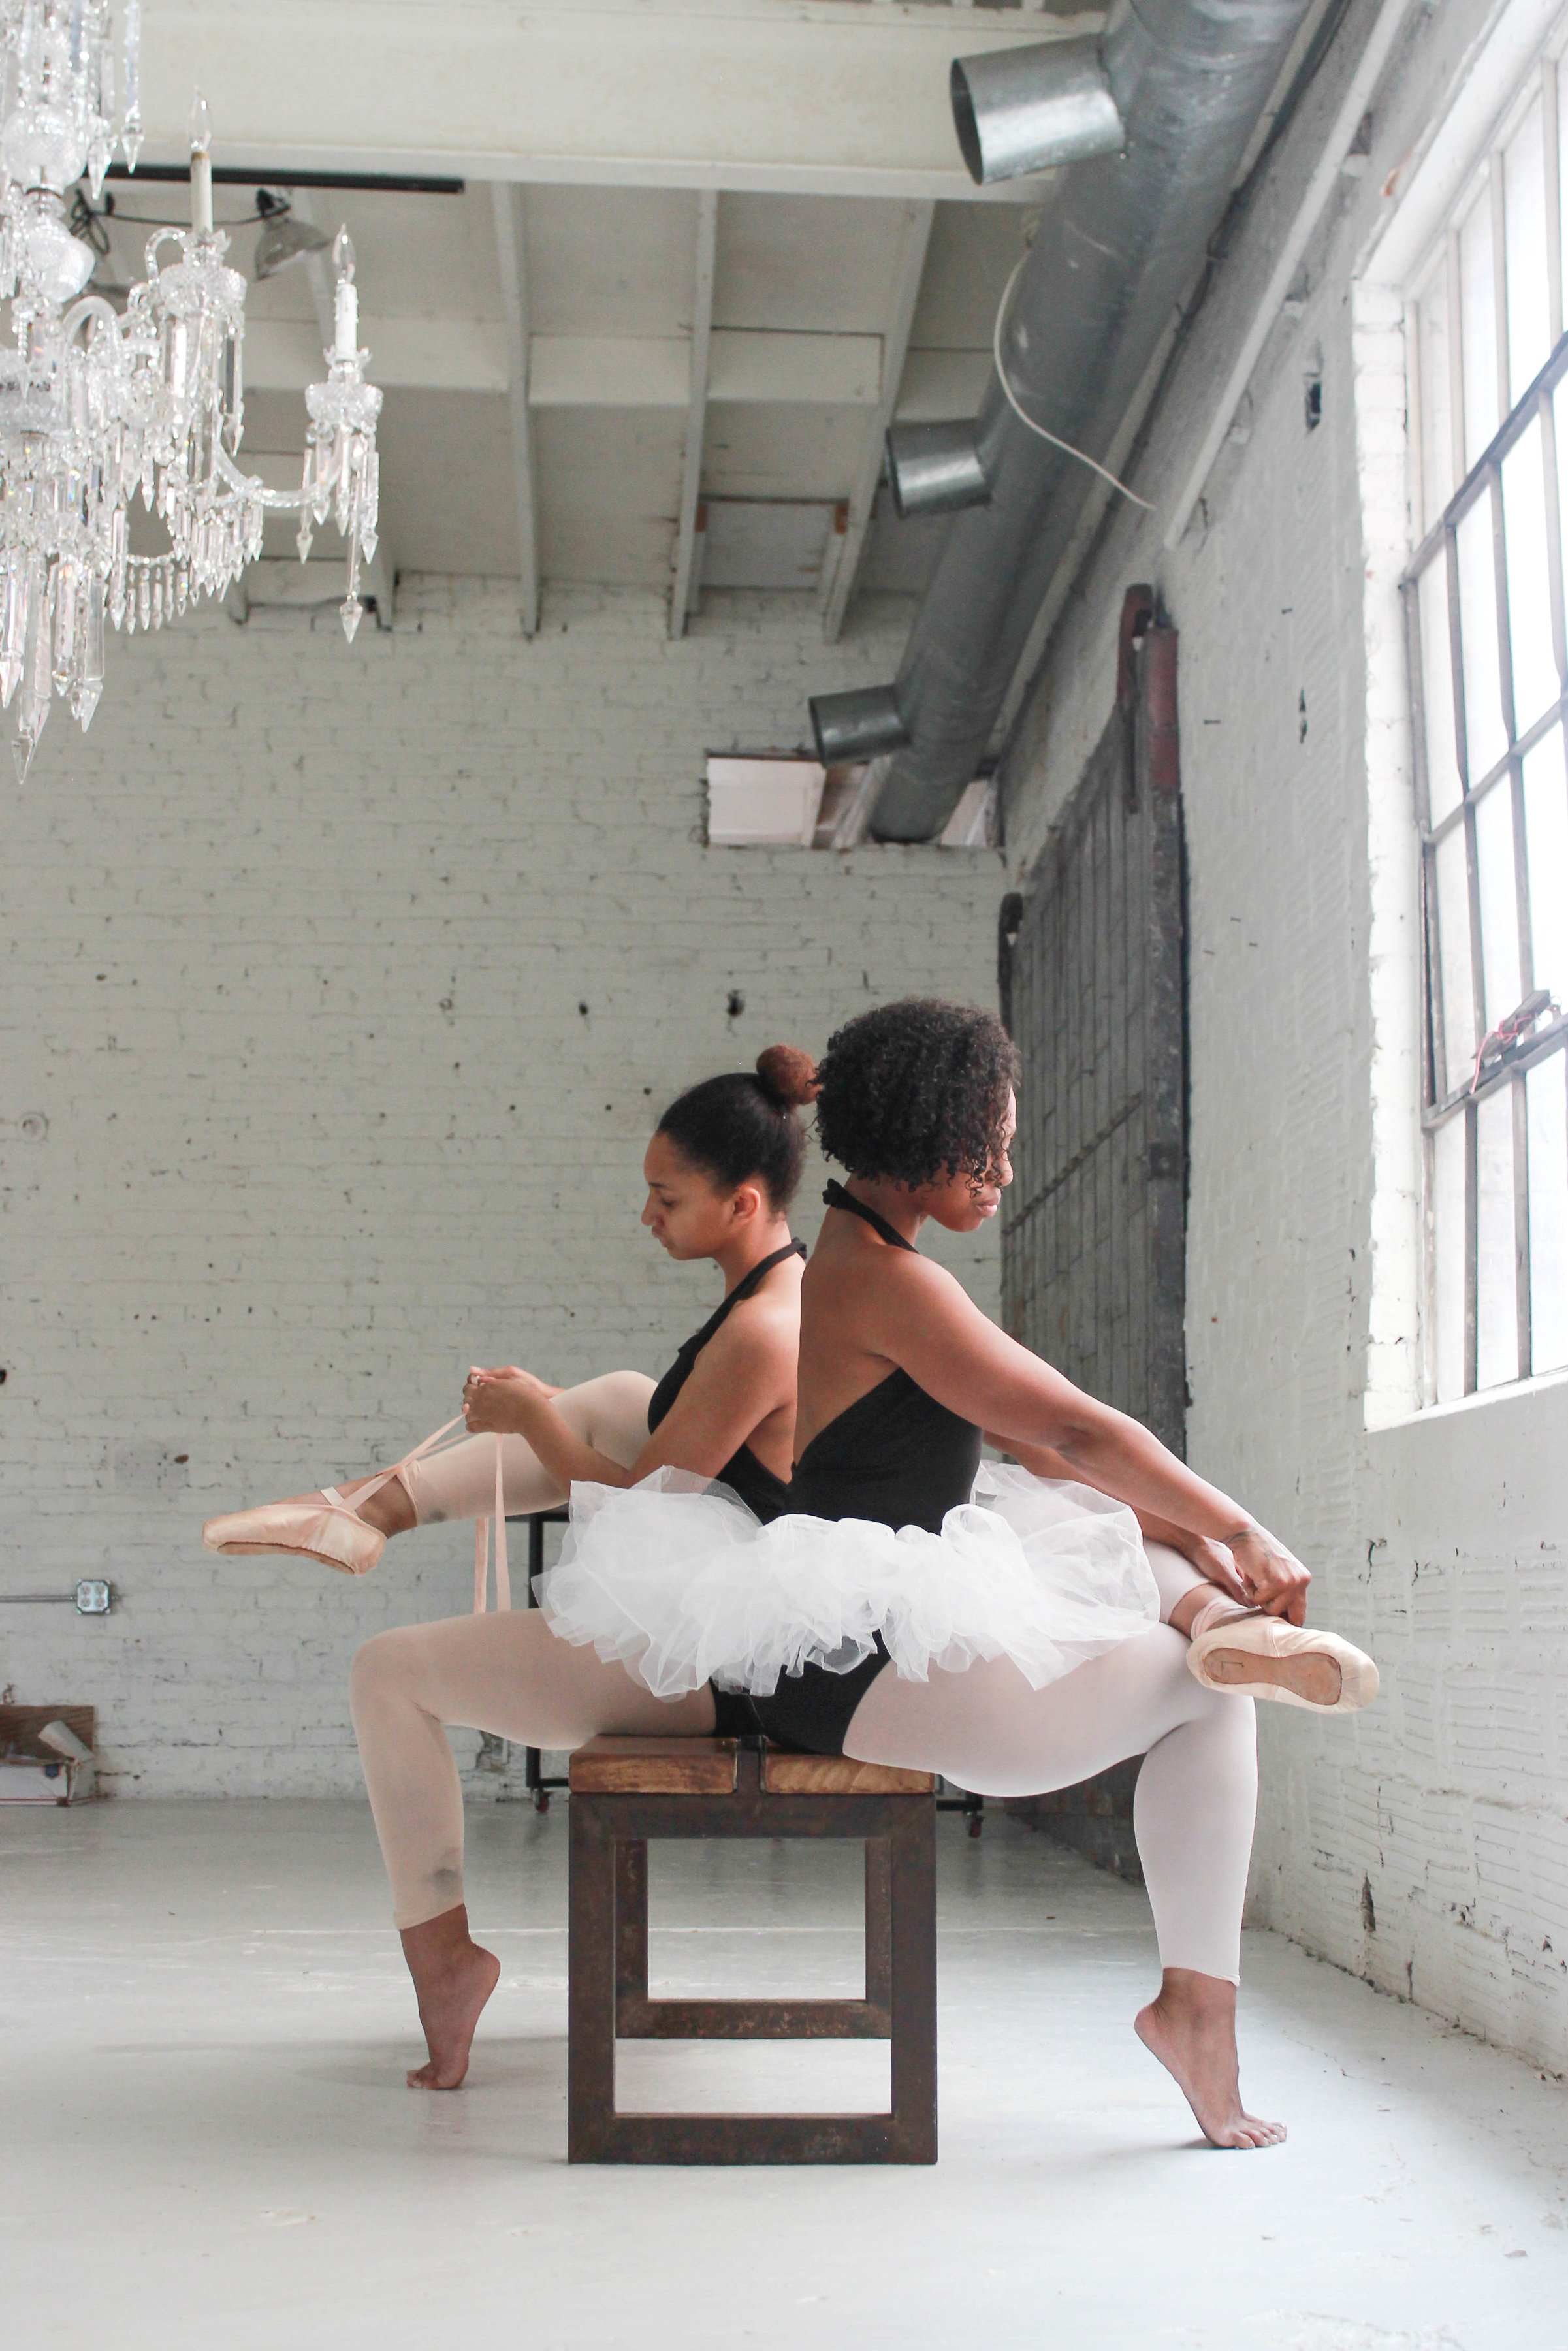 Dancer's Feet: Common Foot Problems and How to Prevent Them